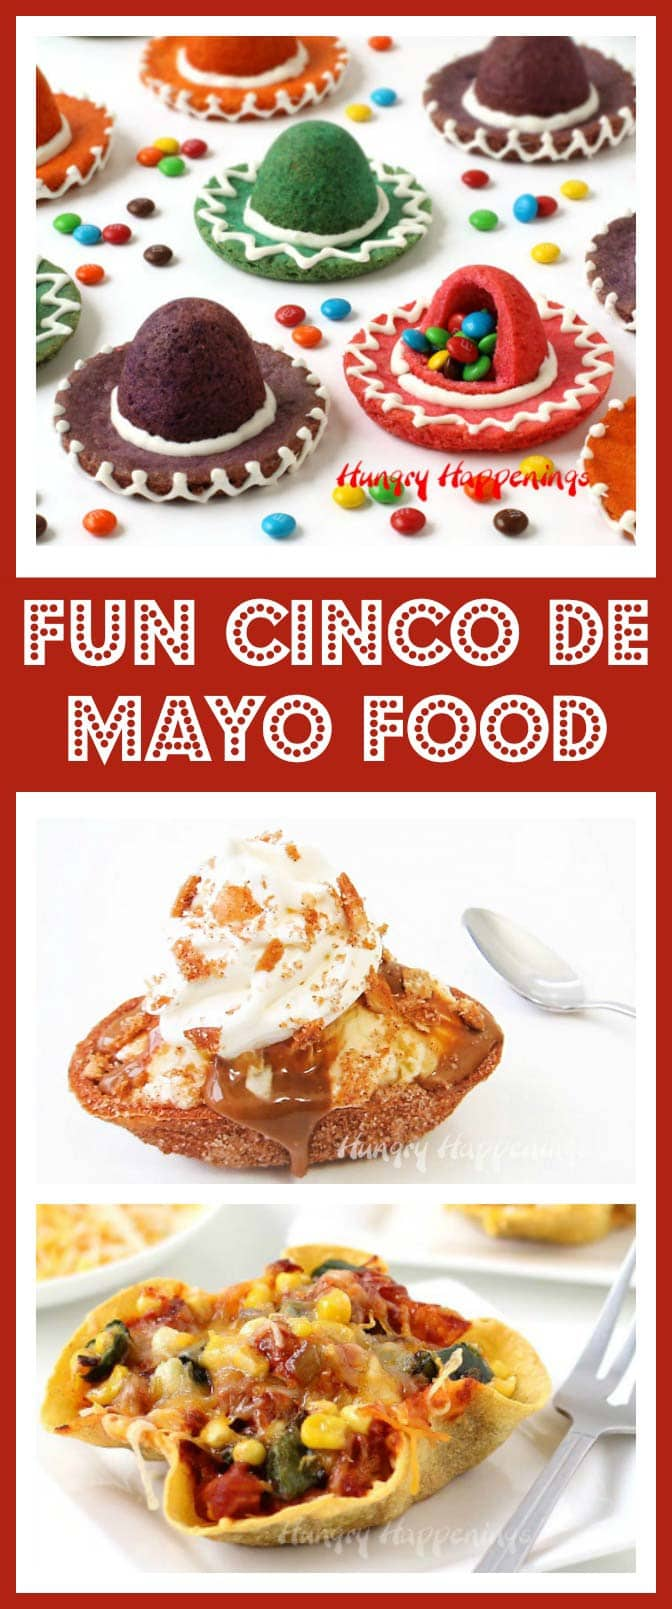 Celebrate the 5th of May by creating some festive Cinco de Mayo recipes. This colorful holiday deserves some equally colorful food.